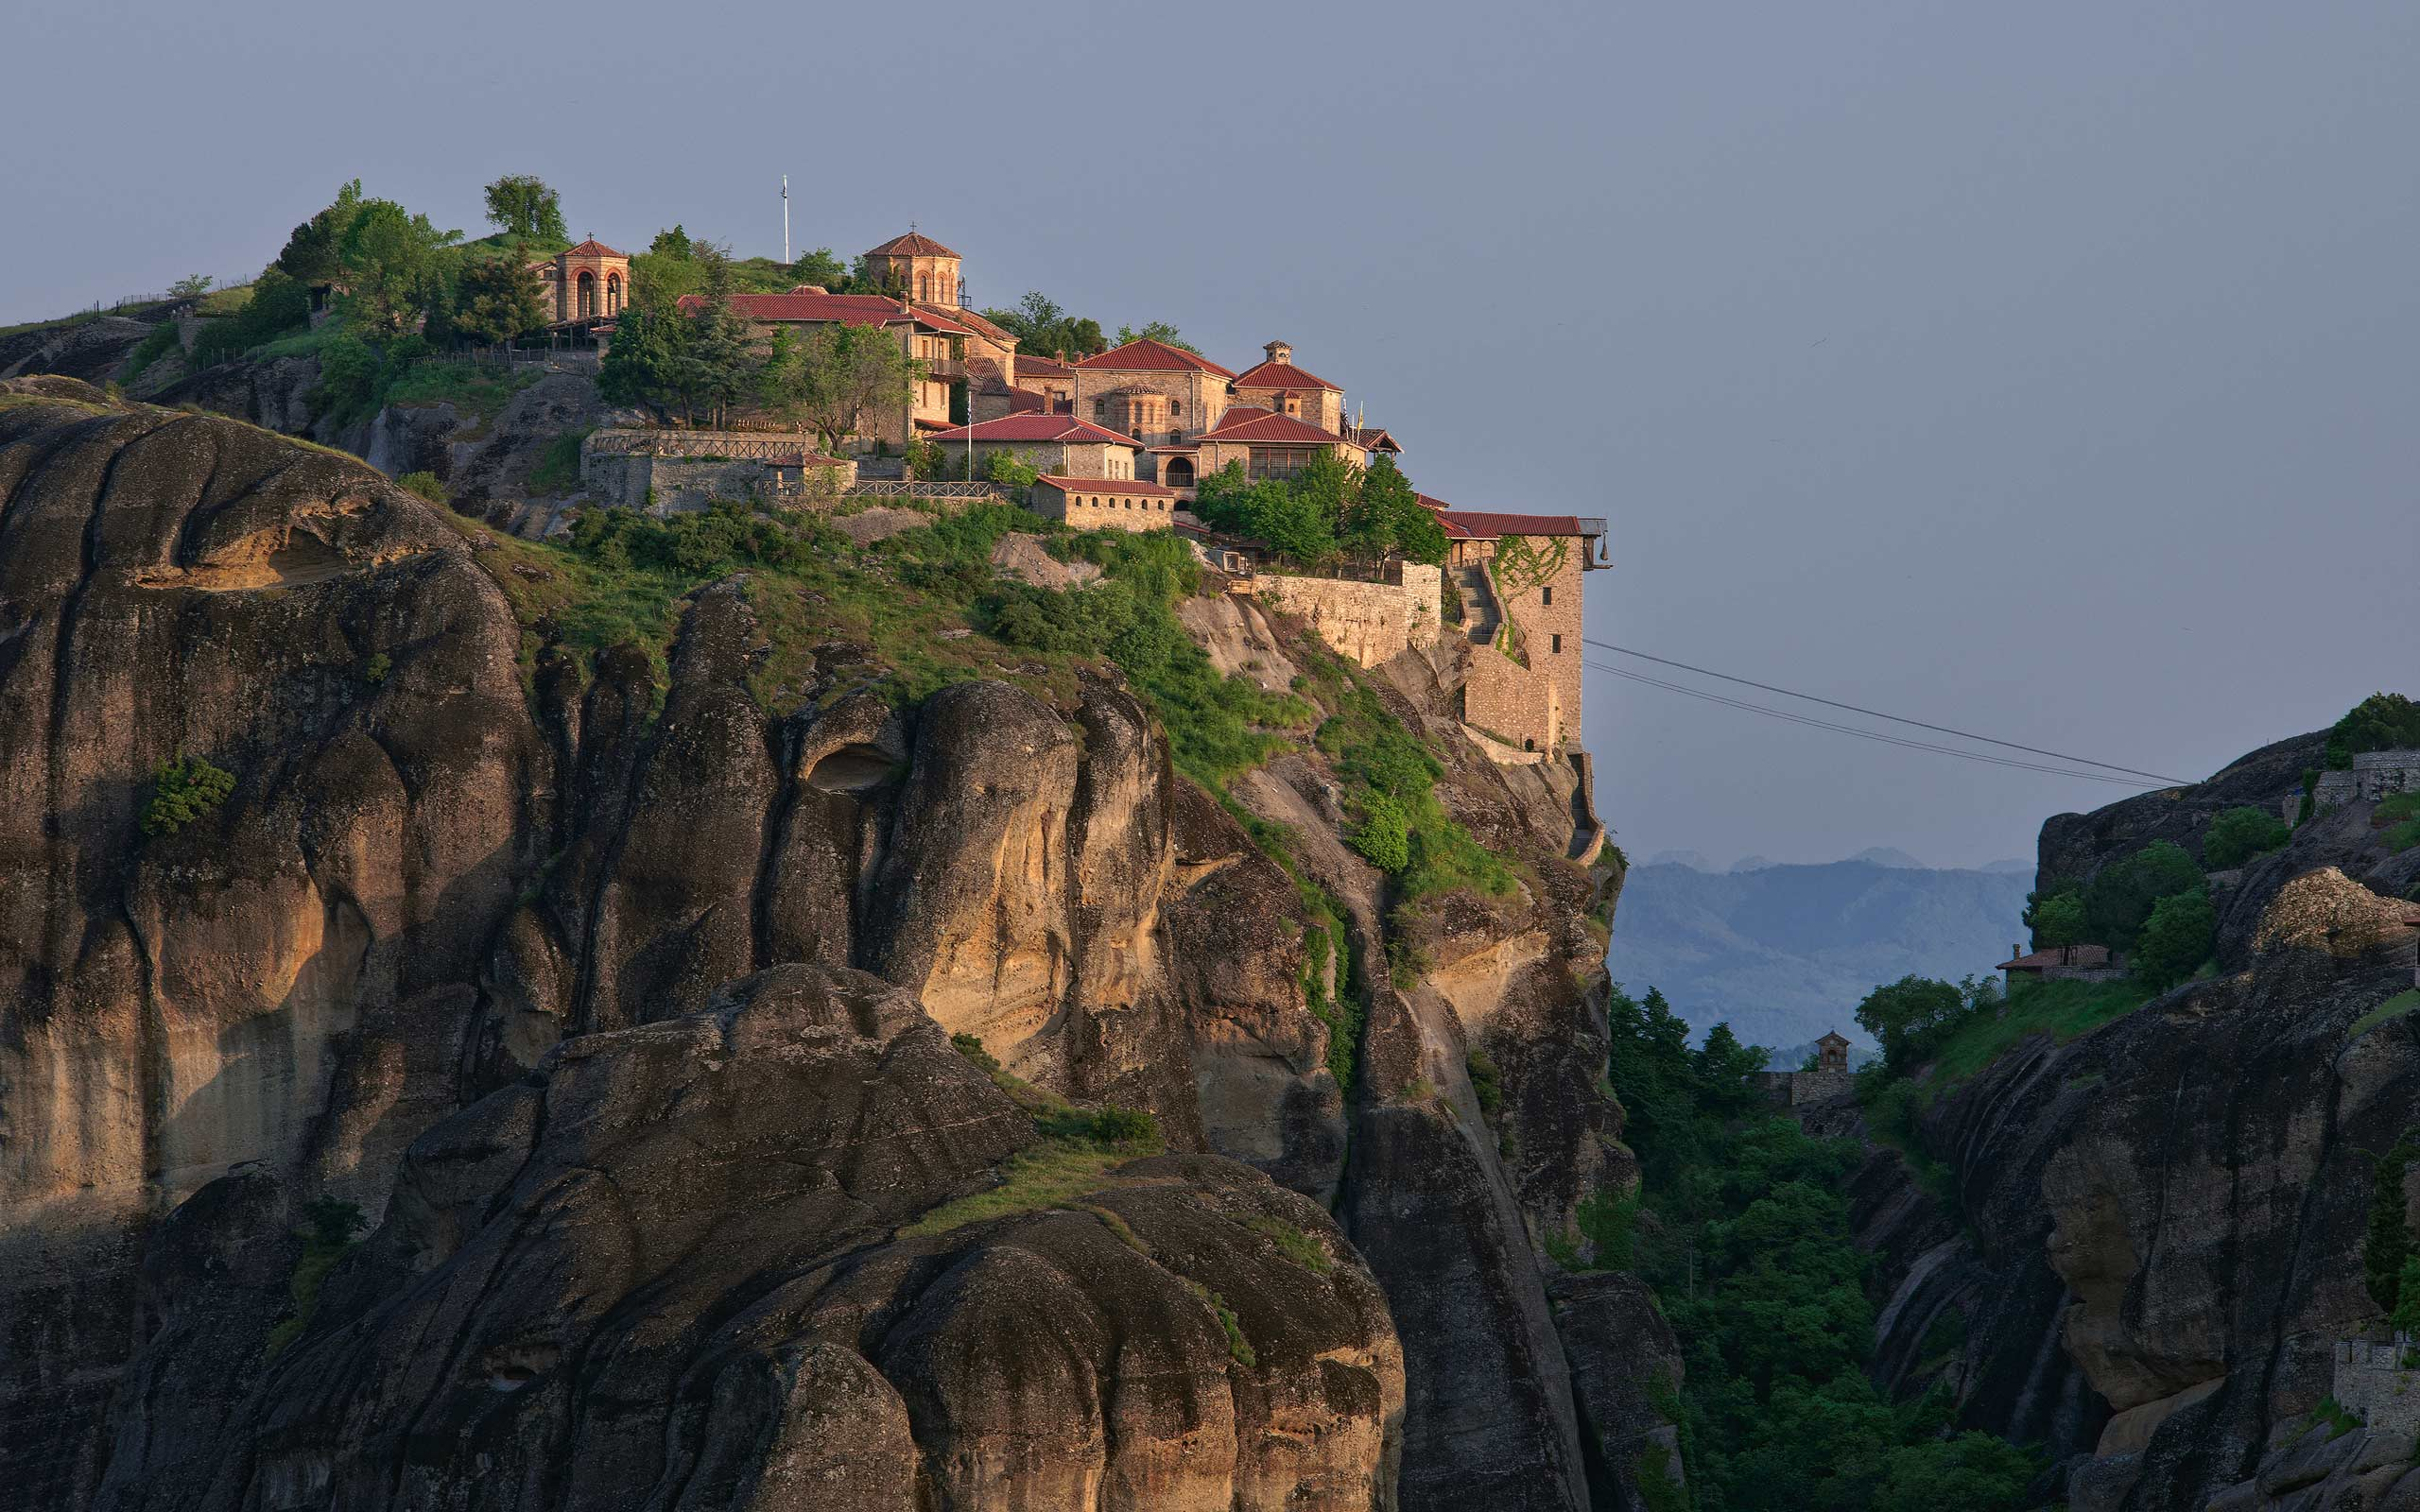 The Holy Monastery of Great Meteoron, Meteora, Thessaly, Greece - Meteora-Monasteries-Greece - Mike Reyfman Photography